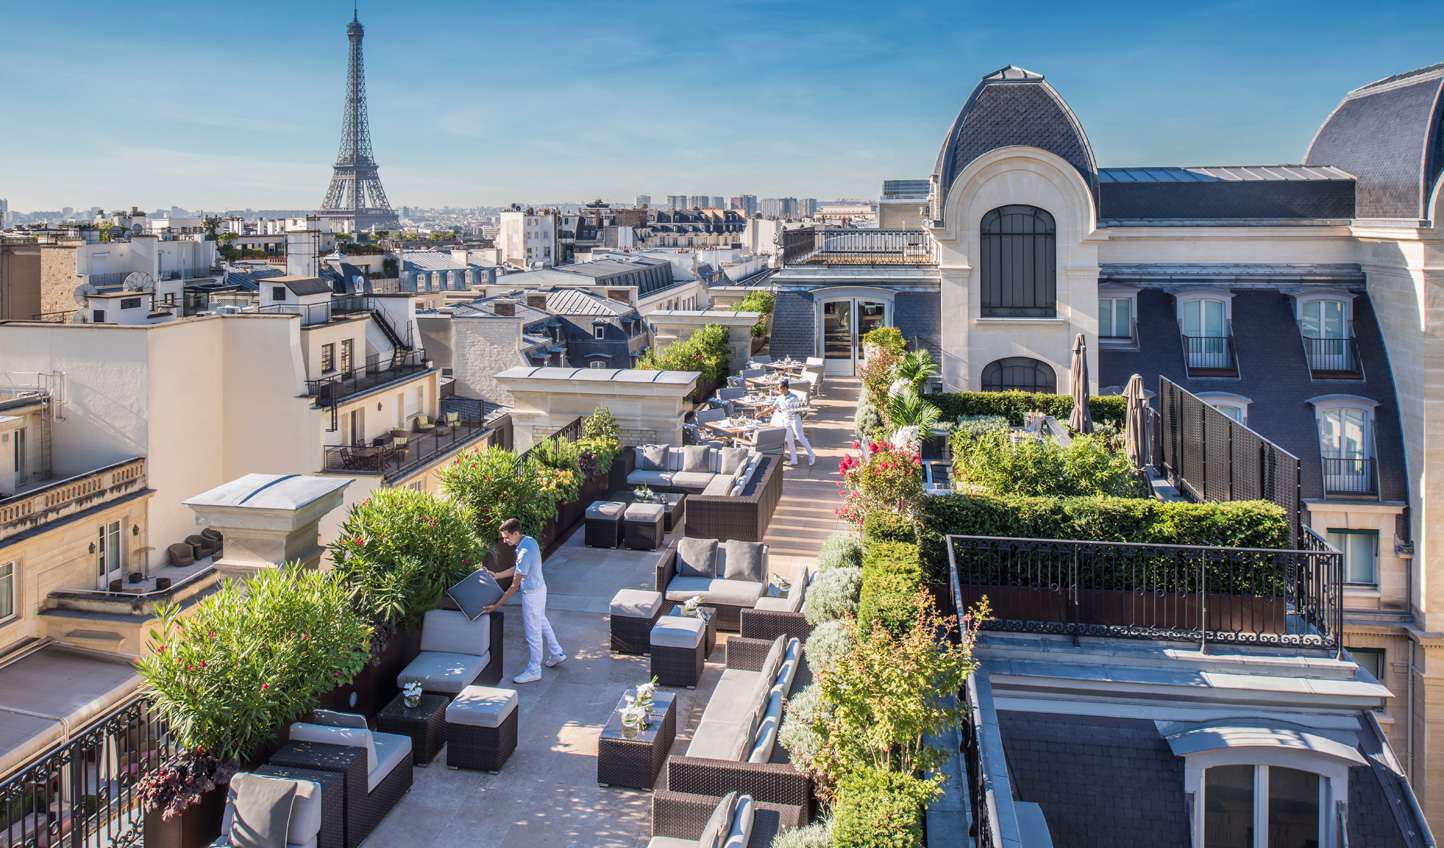 Head to Le Rooftop for spectacular views of Paris and the Eiffel Tower